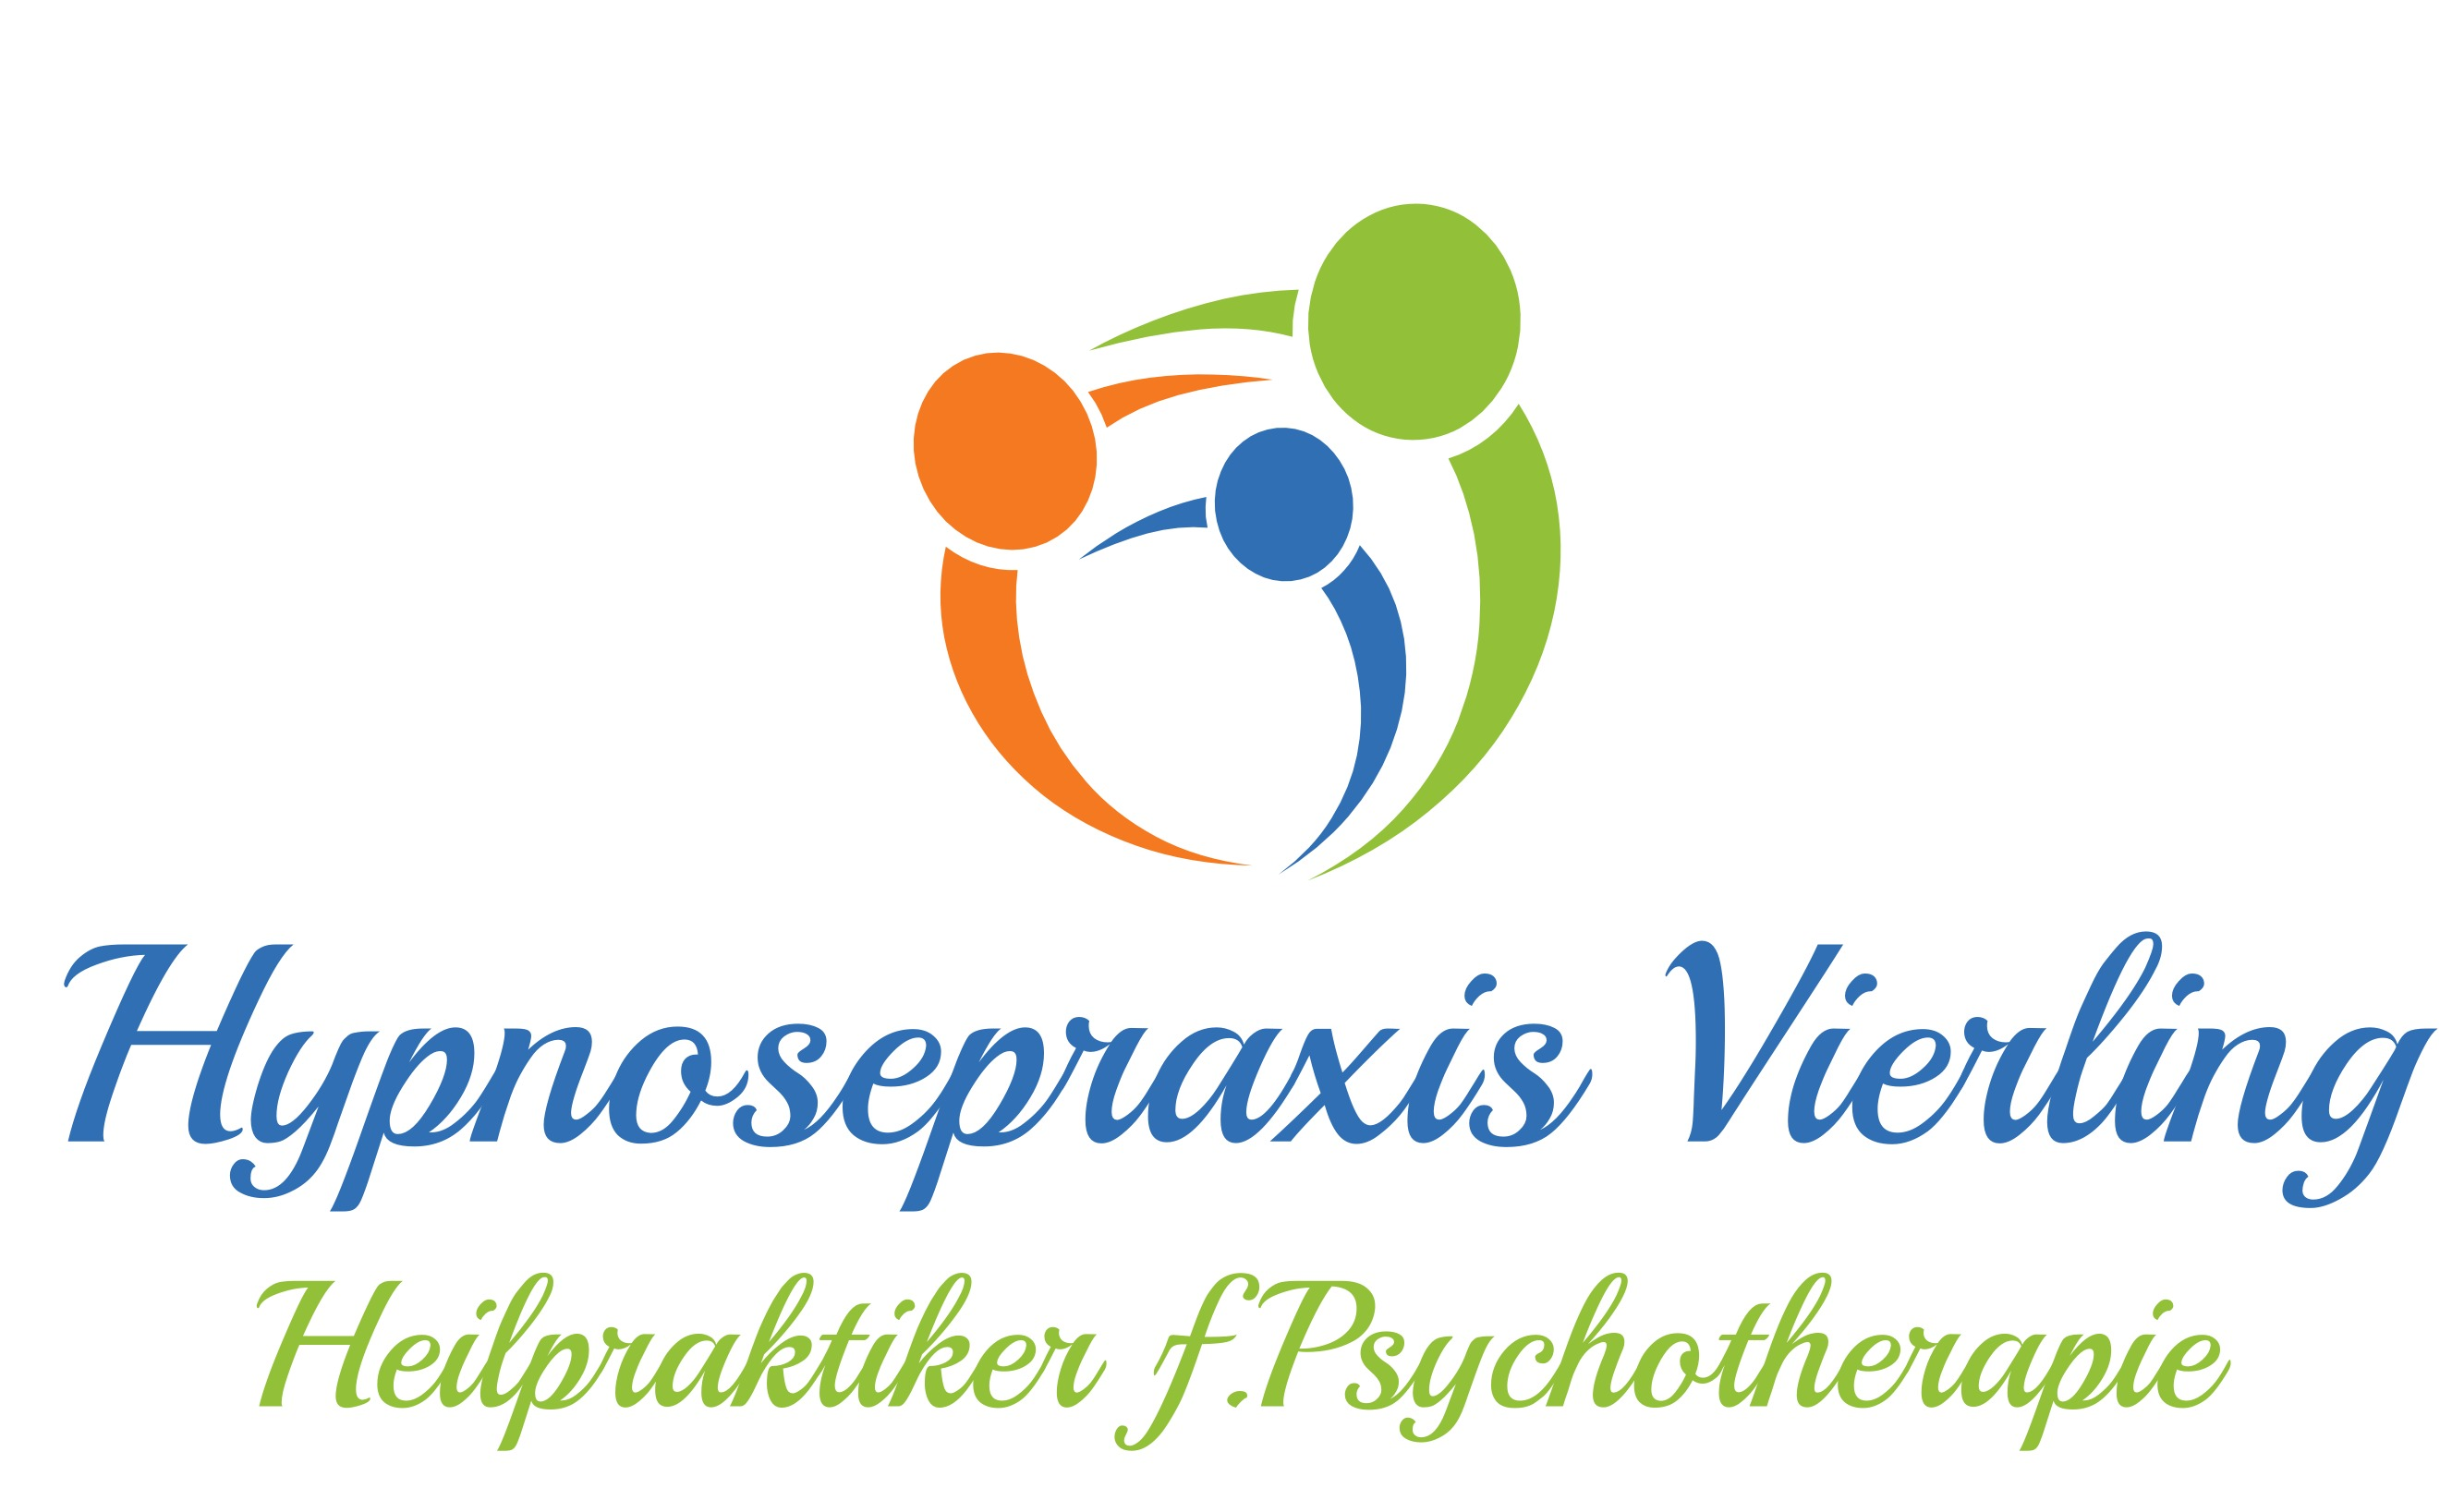 Hypnosepraxis Vierling